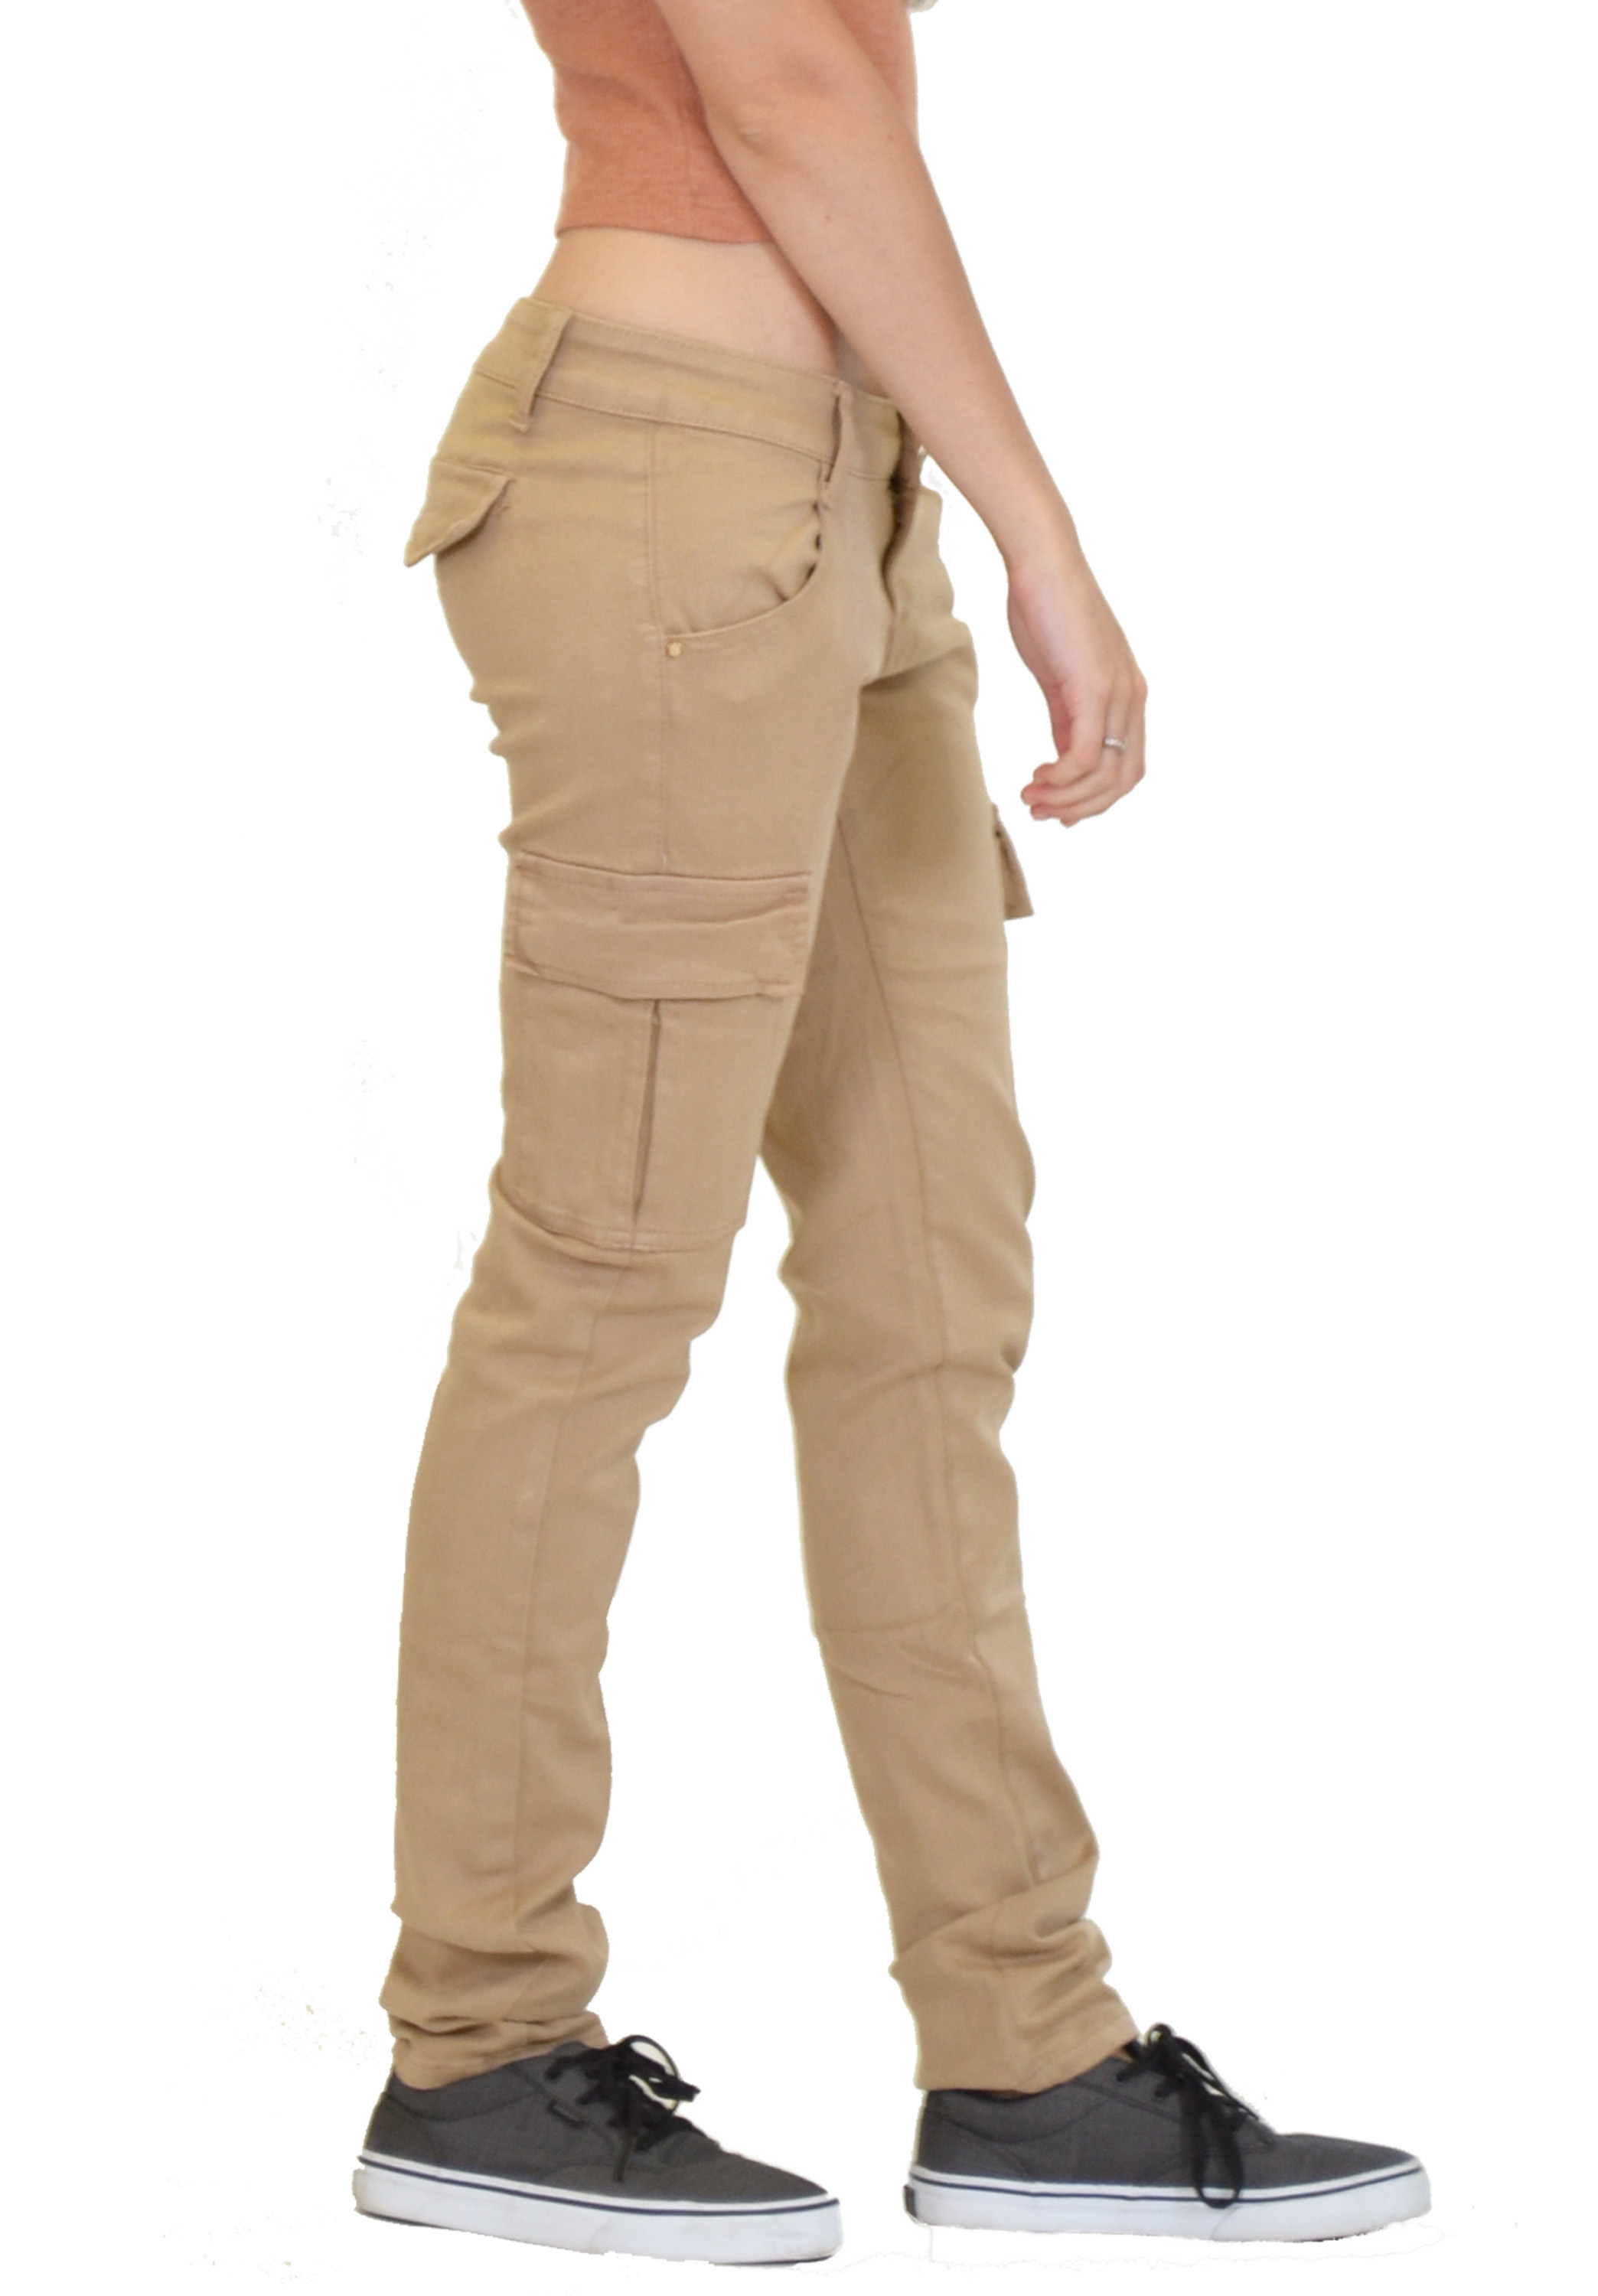 Model Details About New Womens Grey Slim Fitted Combat Pants Skinny Cargo